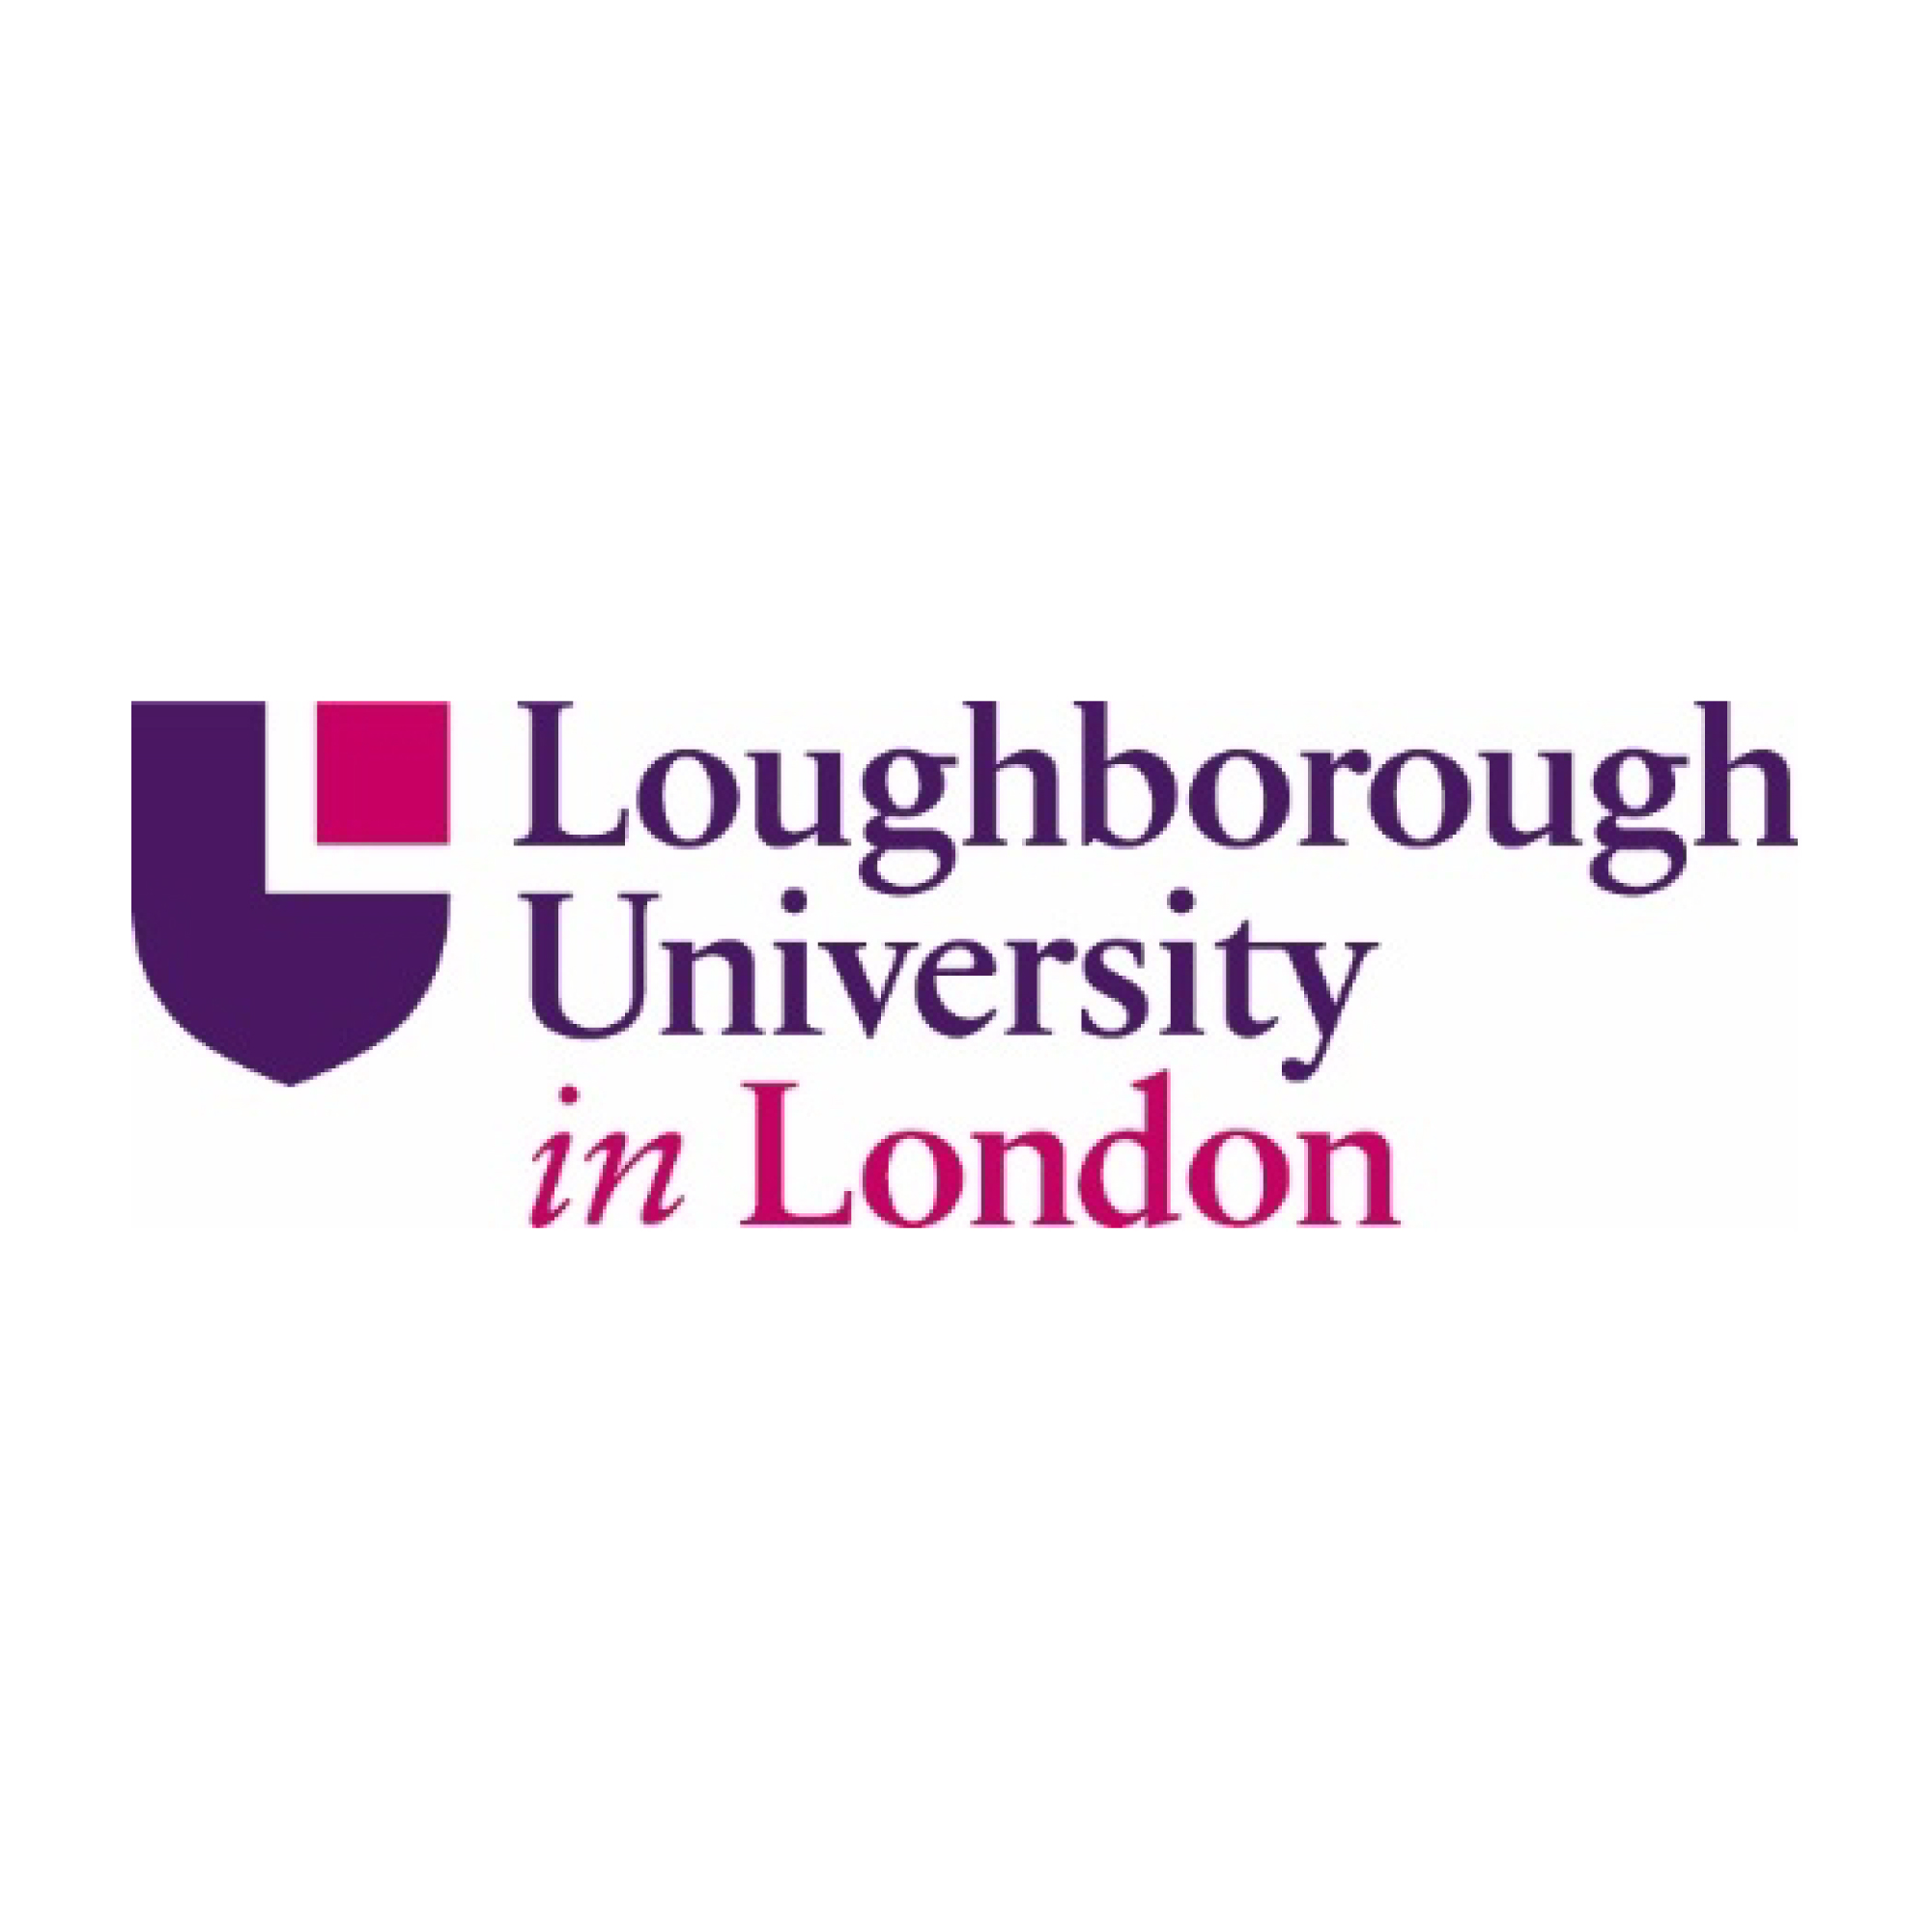 Loughborough University in London logo